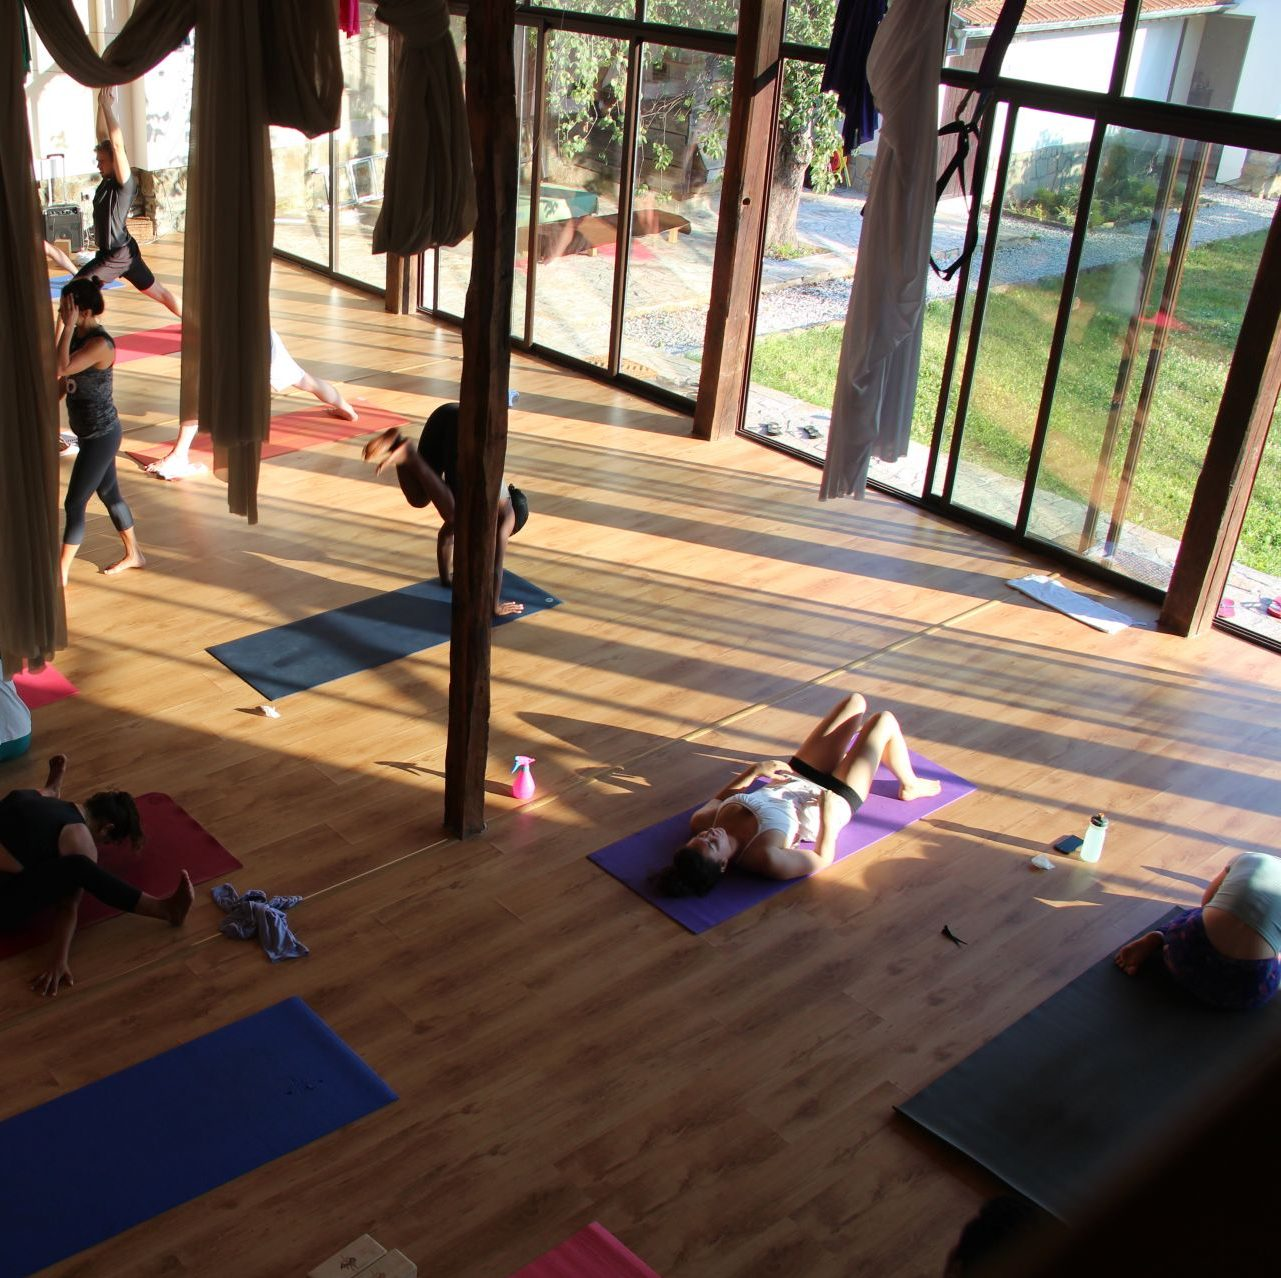 Yoga morning session in our yoga center in Veliko Tarnovo, Bulgaria